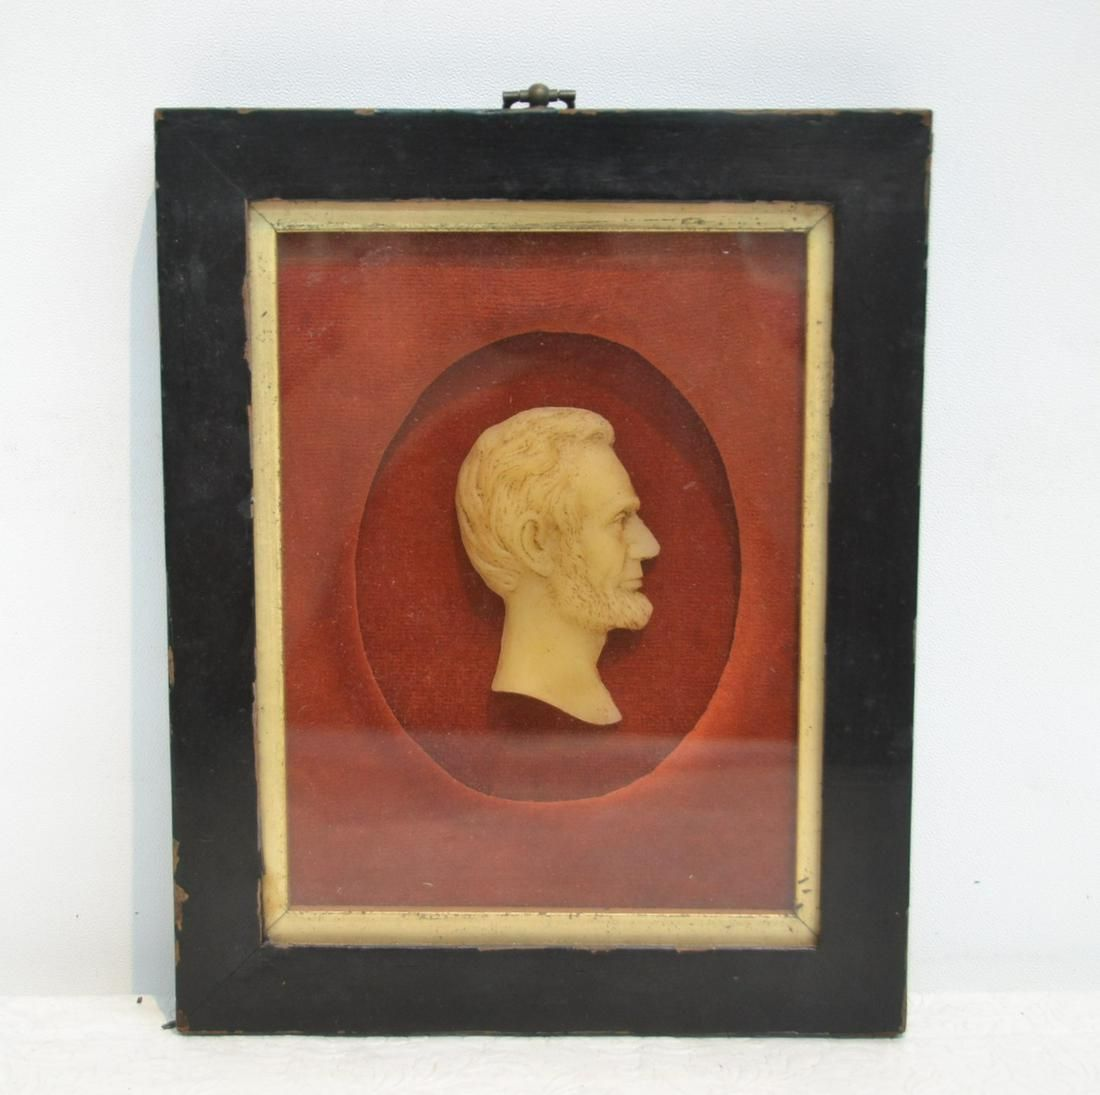 FRAMED WAX PROFILE BUST OF ABRAHAM LINCOLN